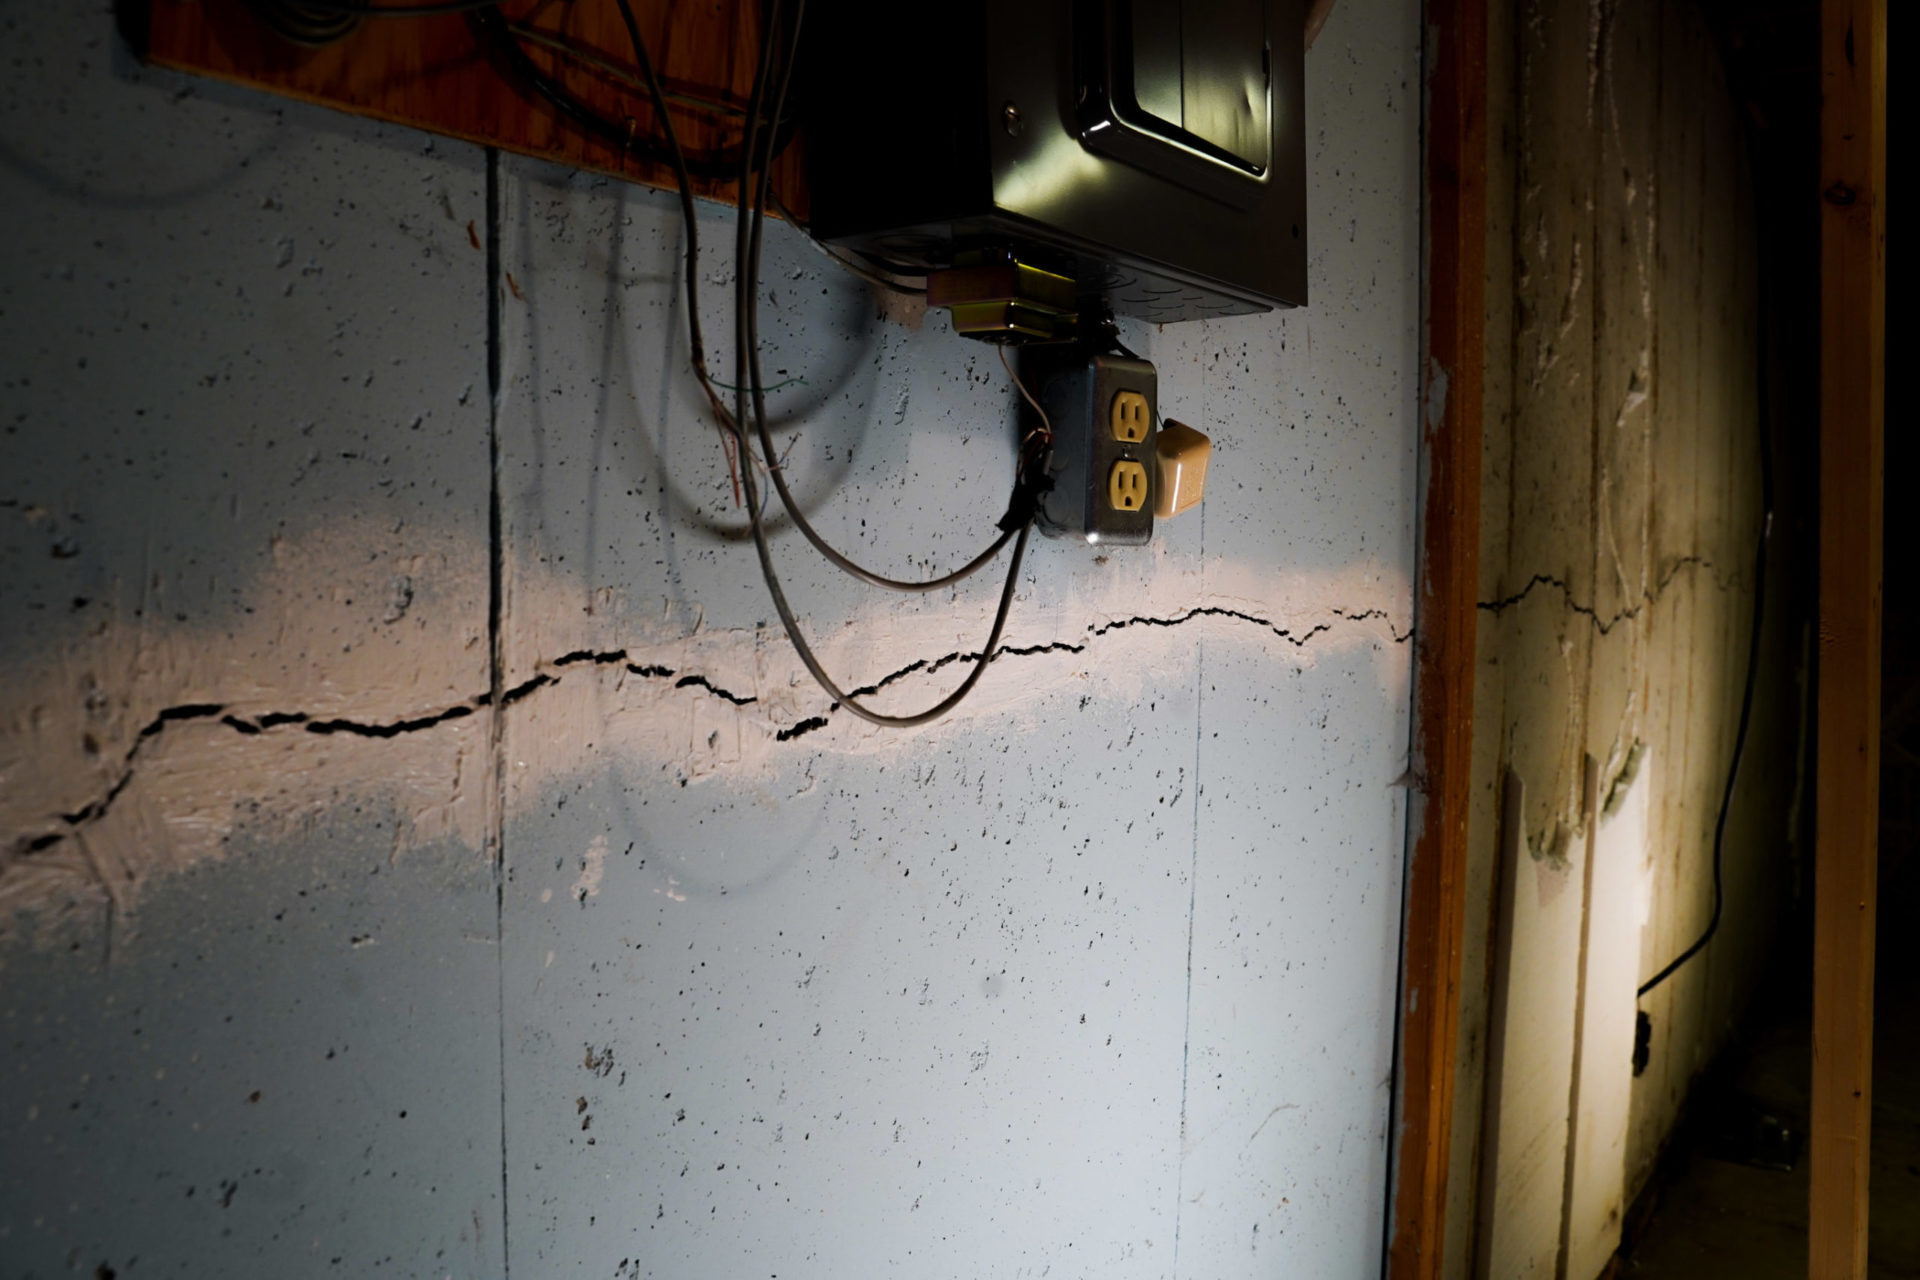 Horizontal wall crack on blue wall underneath TV in basement